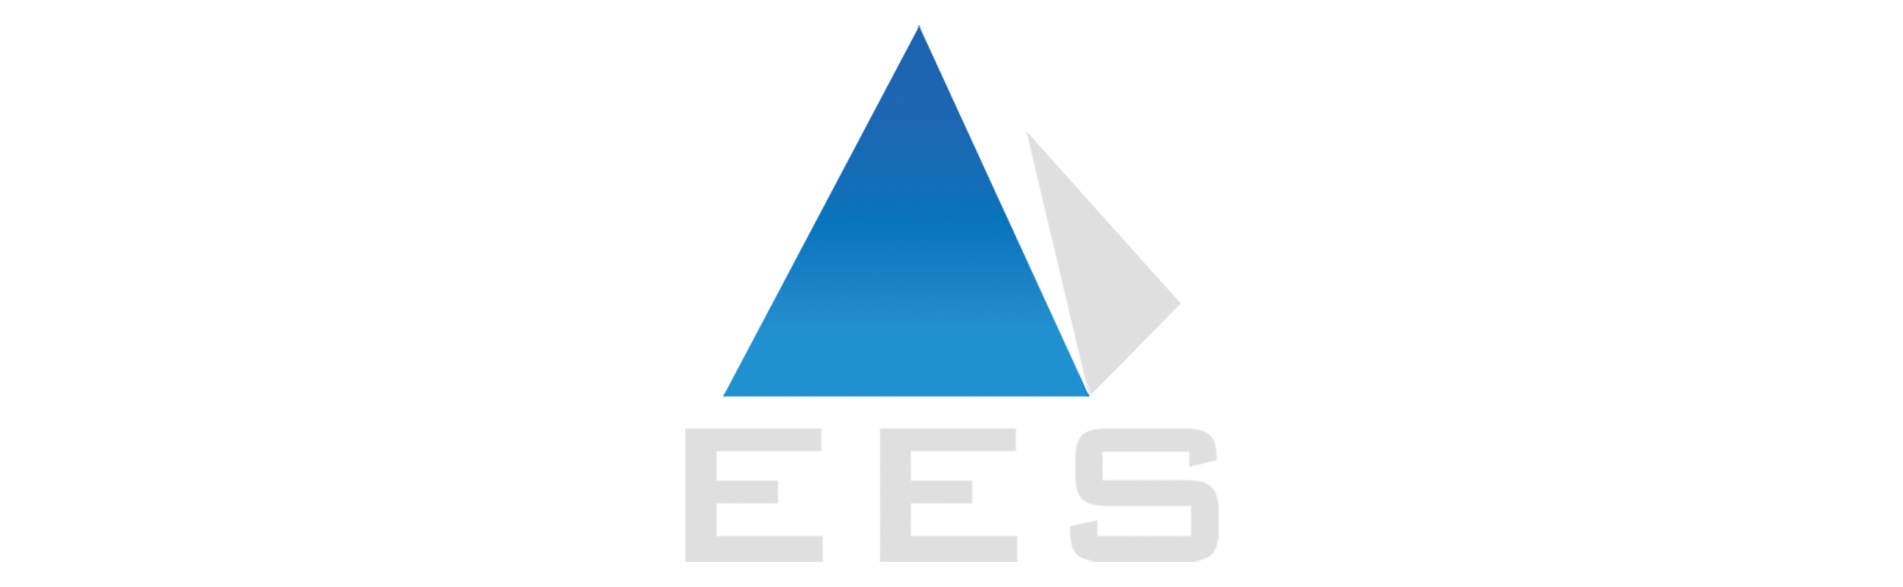 Logo is a pyramid with front in blue and right side in gray. The initials E.E.S. are below in gray.